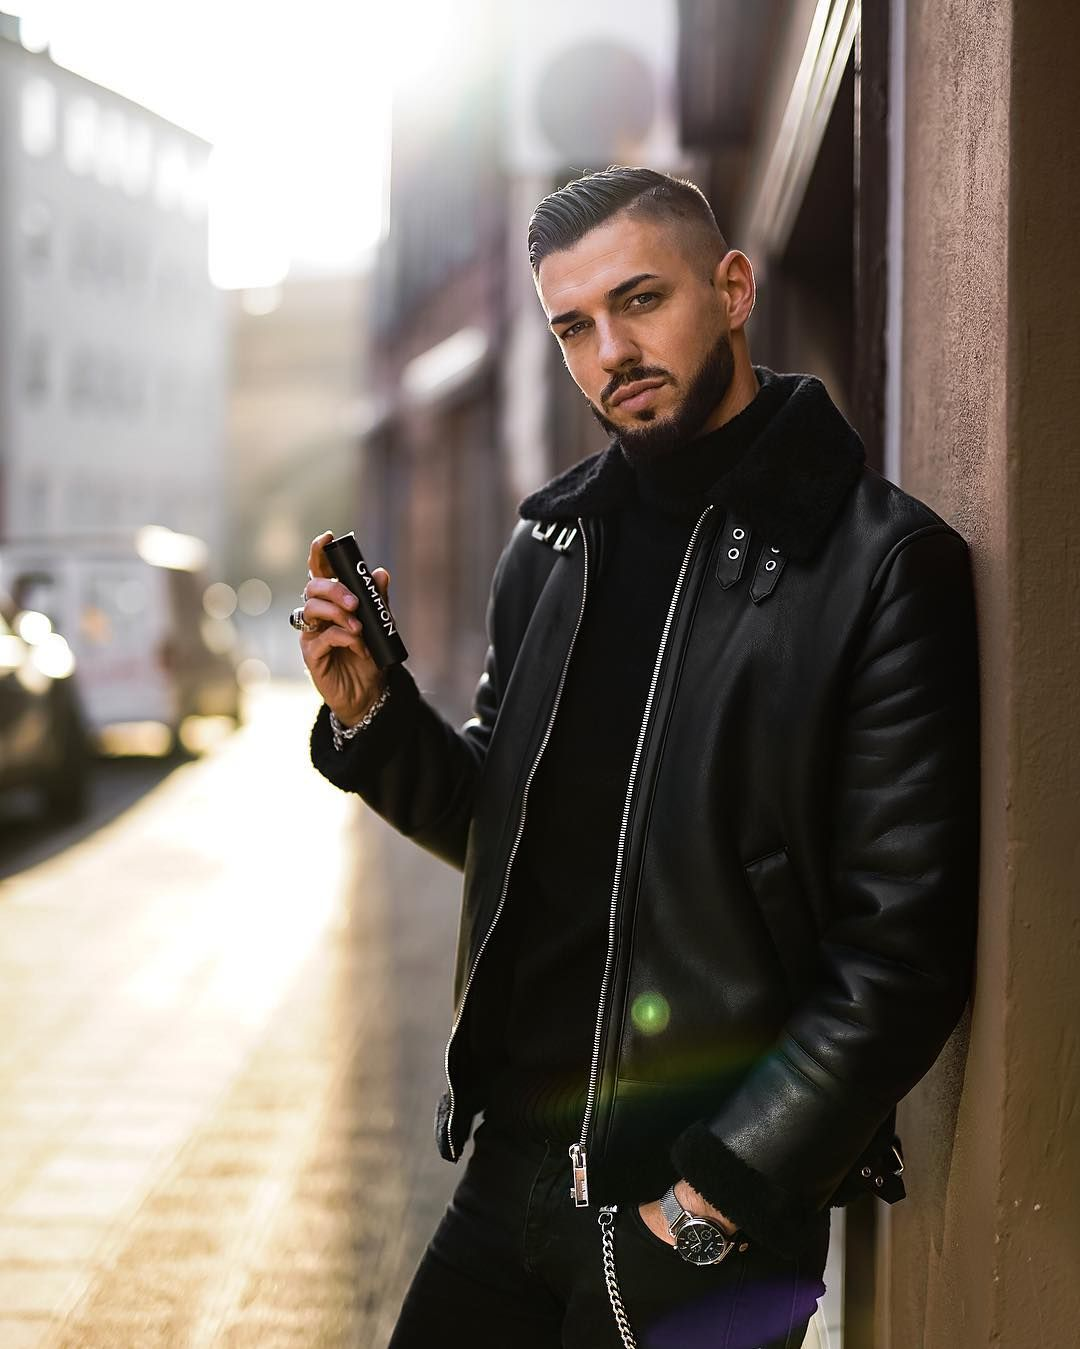 Fio On Instagram The Spring Can Come I Always Have My Fragrances From Gammon Official By Me There Are 4 Differe Casual Fashion Leather Jacket Mens Fashion [ 1349 x 1080 Pixel ]